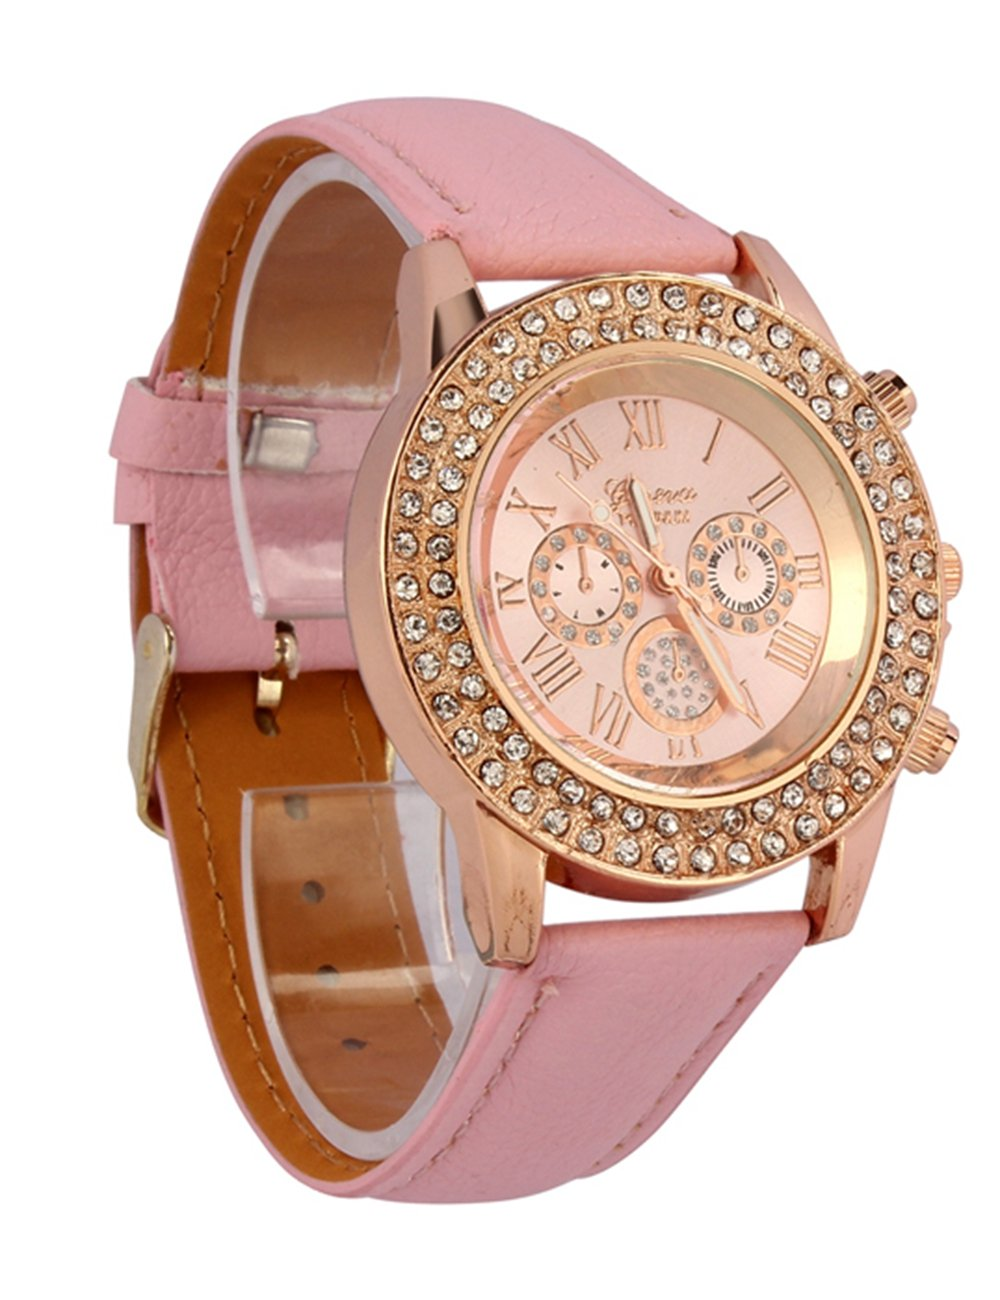 Womens Geneva Quartz Watches Crystal Analog Lady Wrist Watch Female Watches for Women Round Alloy Dial Case Comfortable…